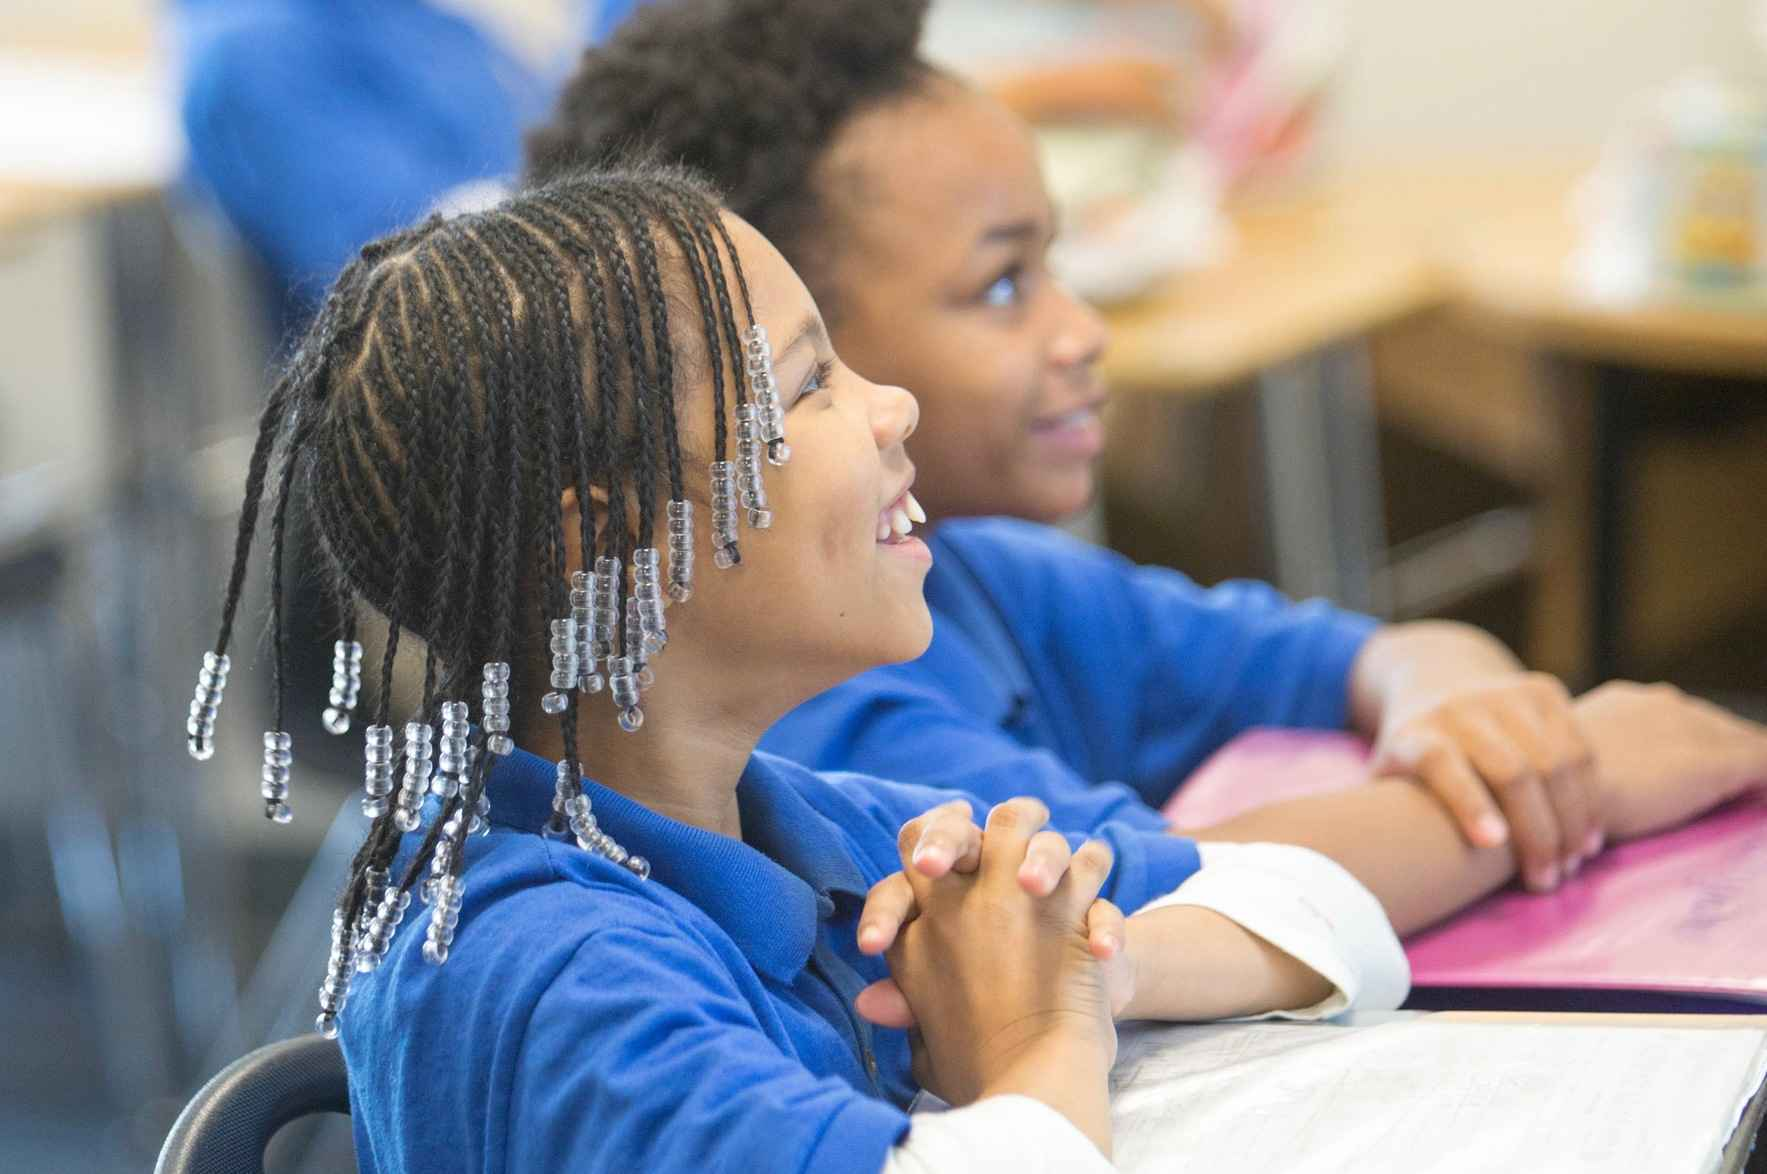 Give now to provide an A+ education for more students in Vance County. image